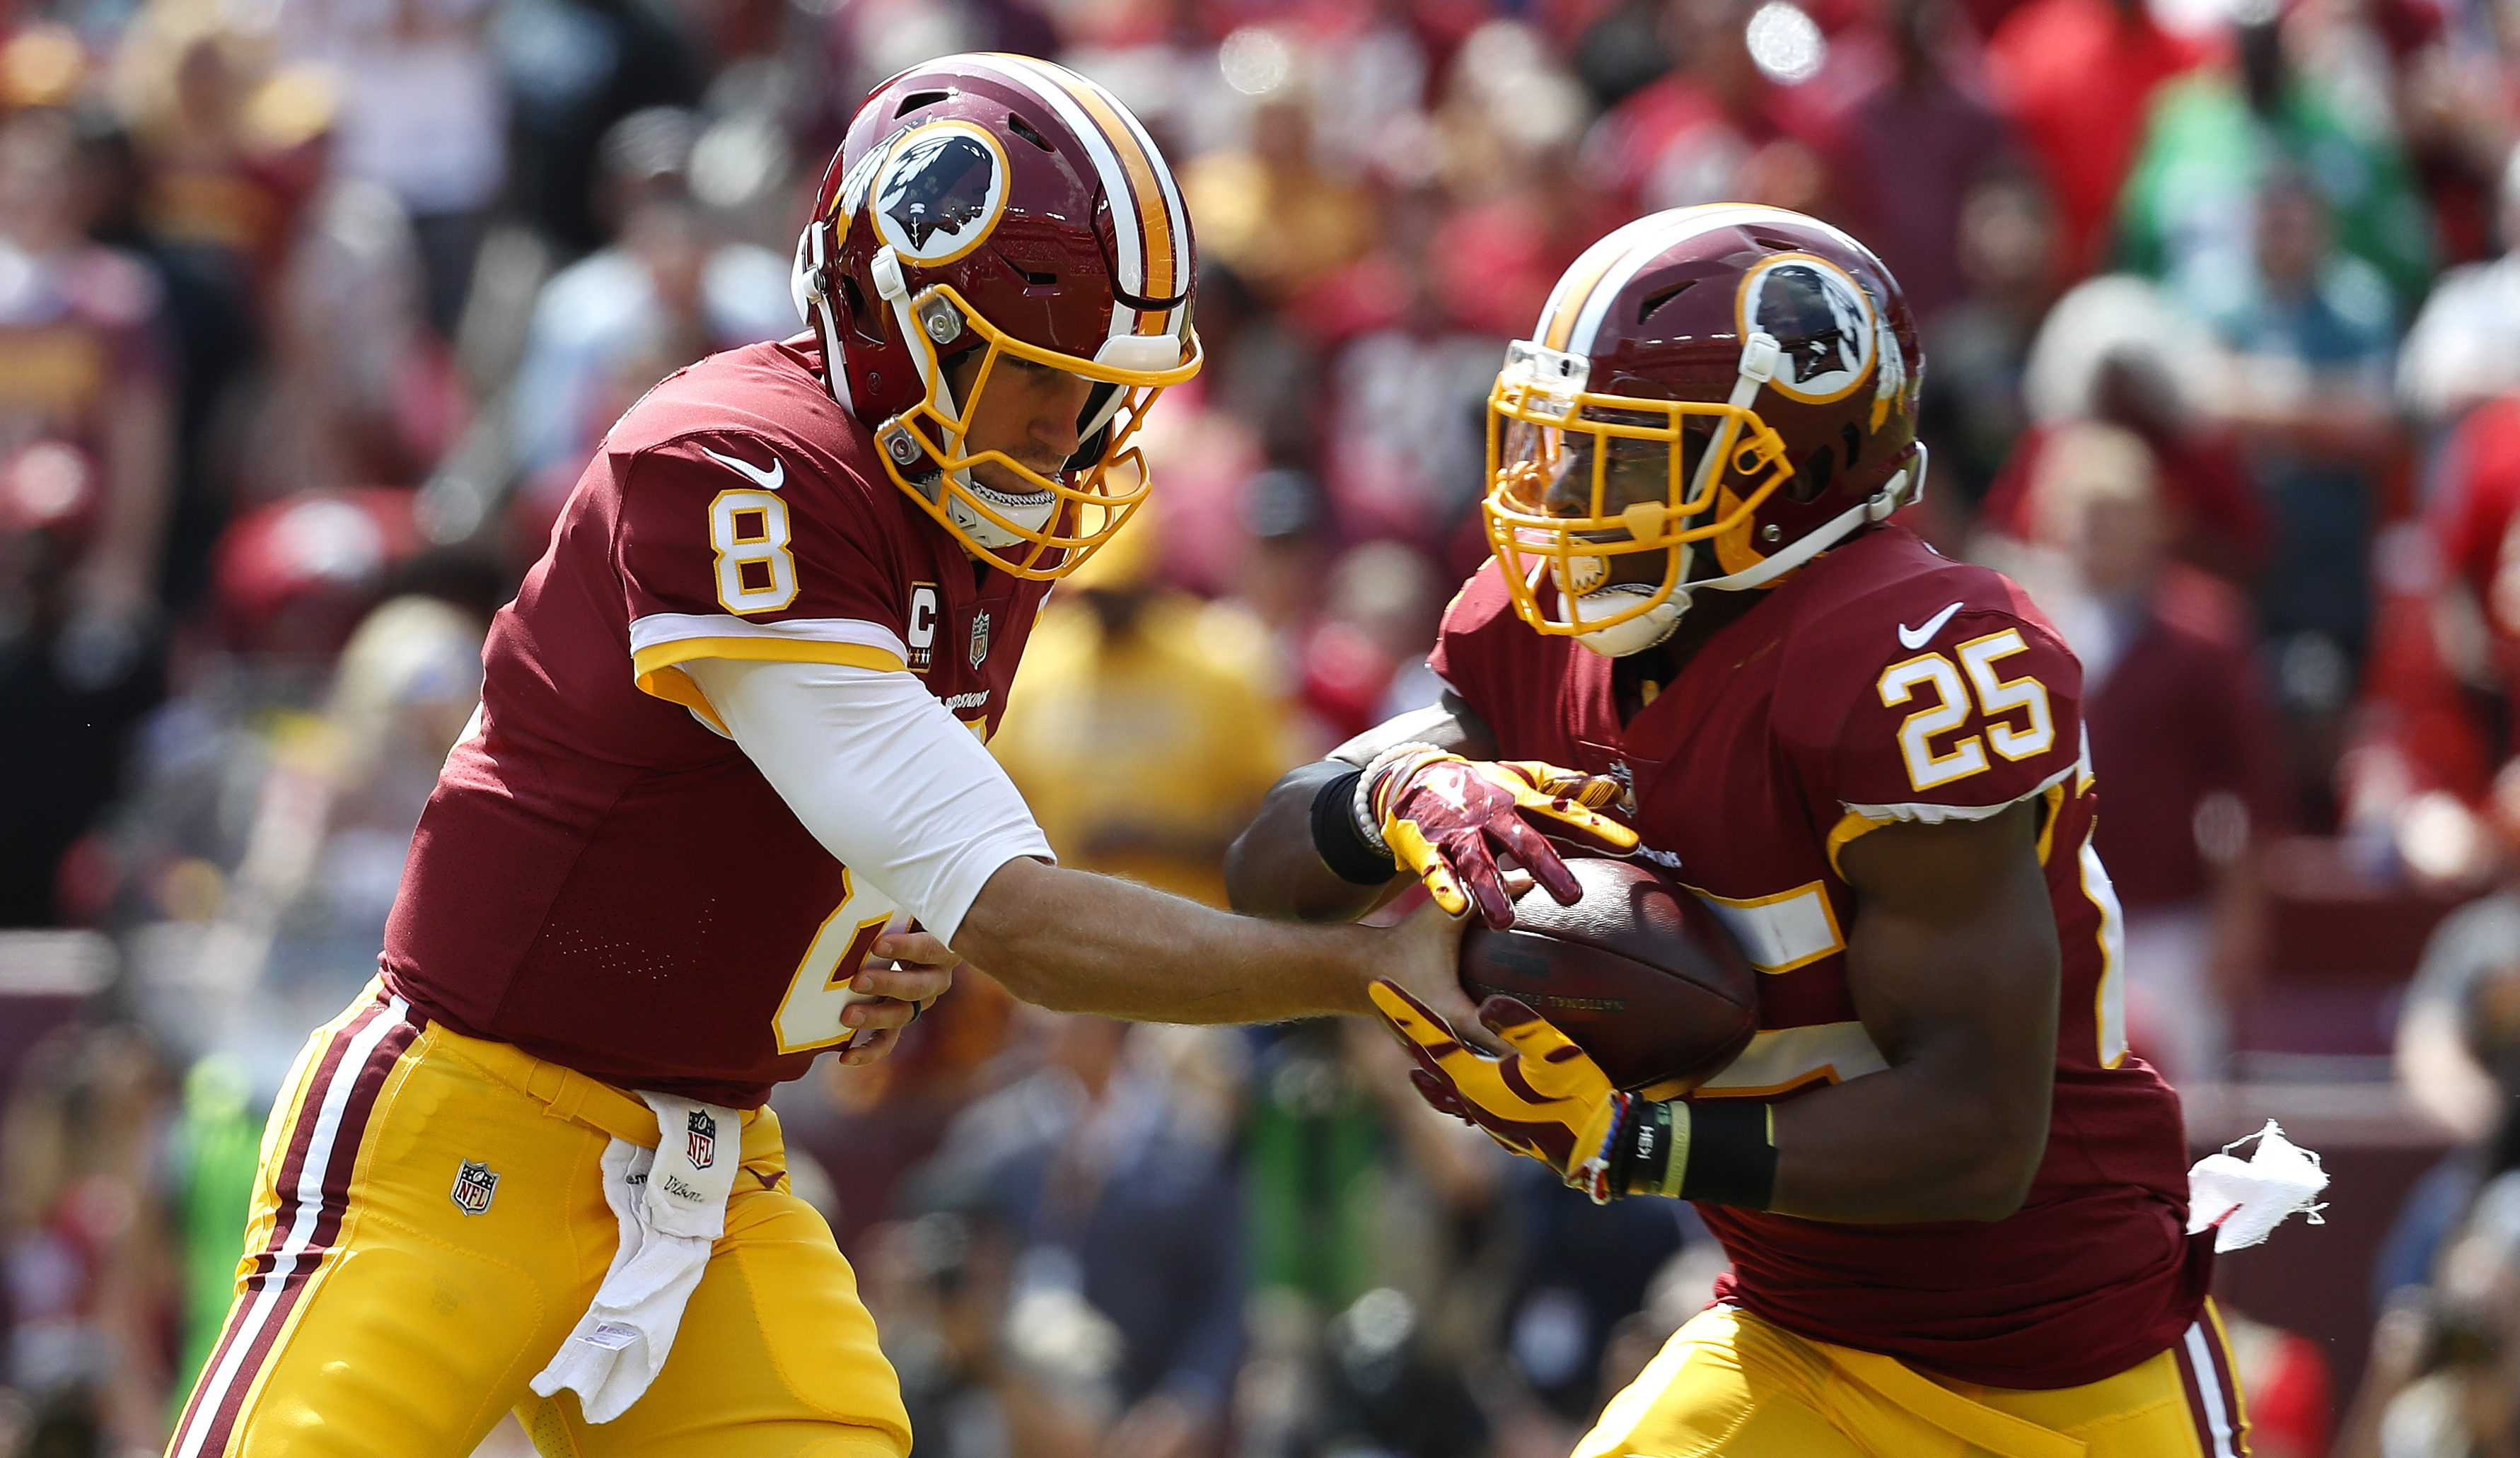 Washington Redskins quarterback Kirk Cousins, left, hands off to Washington Redskins running back Chris Thompson in the first half of an NFL football game against the Philadelphia Eagles, Sunday, Sept. 10, 2017, in Landover, Md. (AP Photo/Alex Brandon)